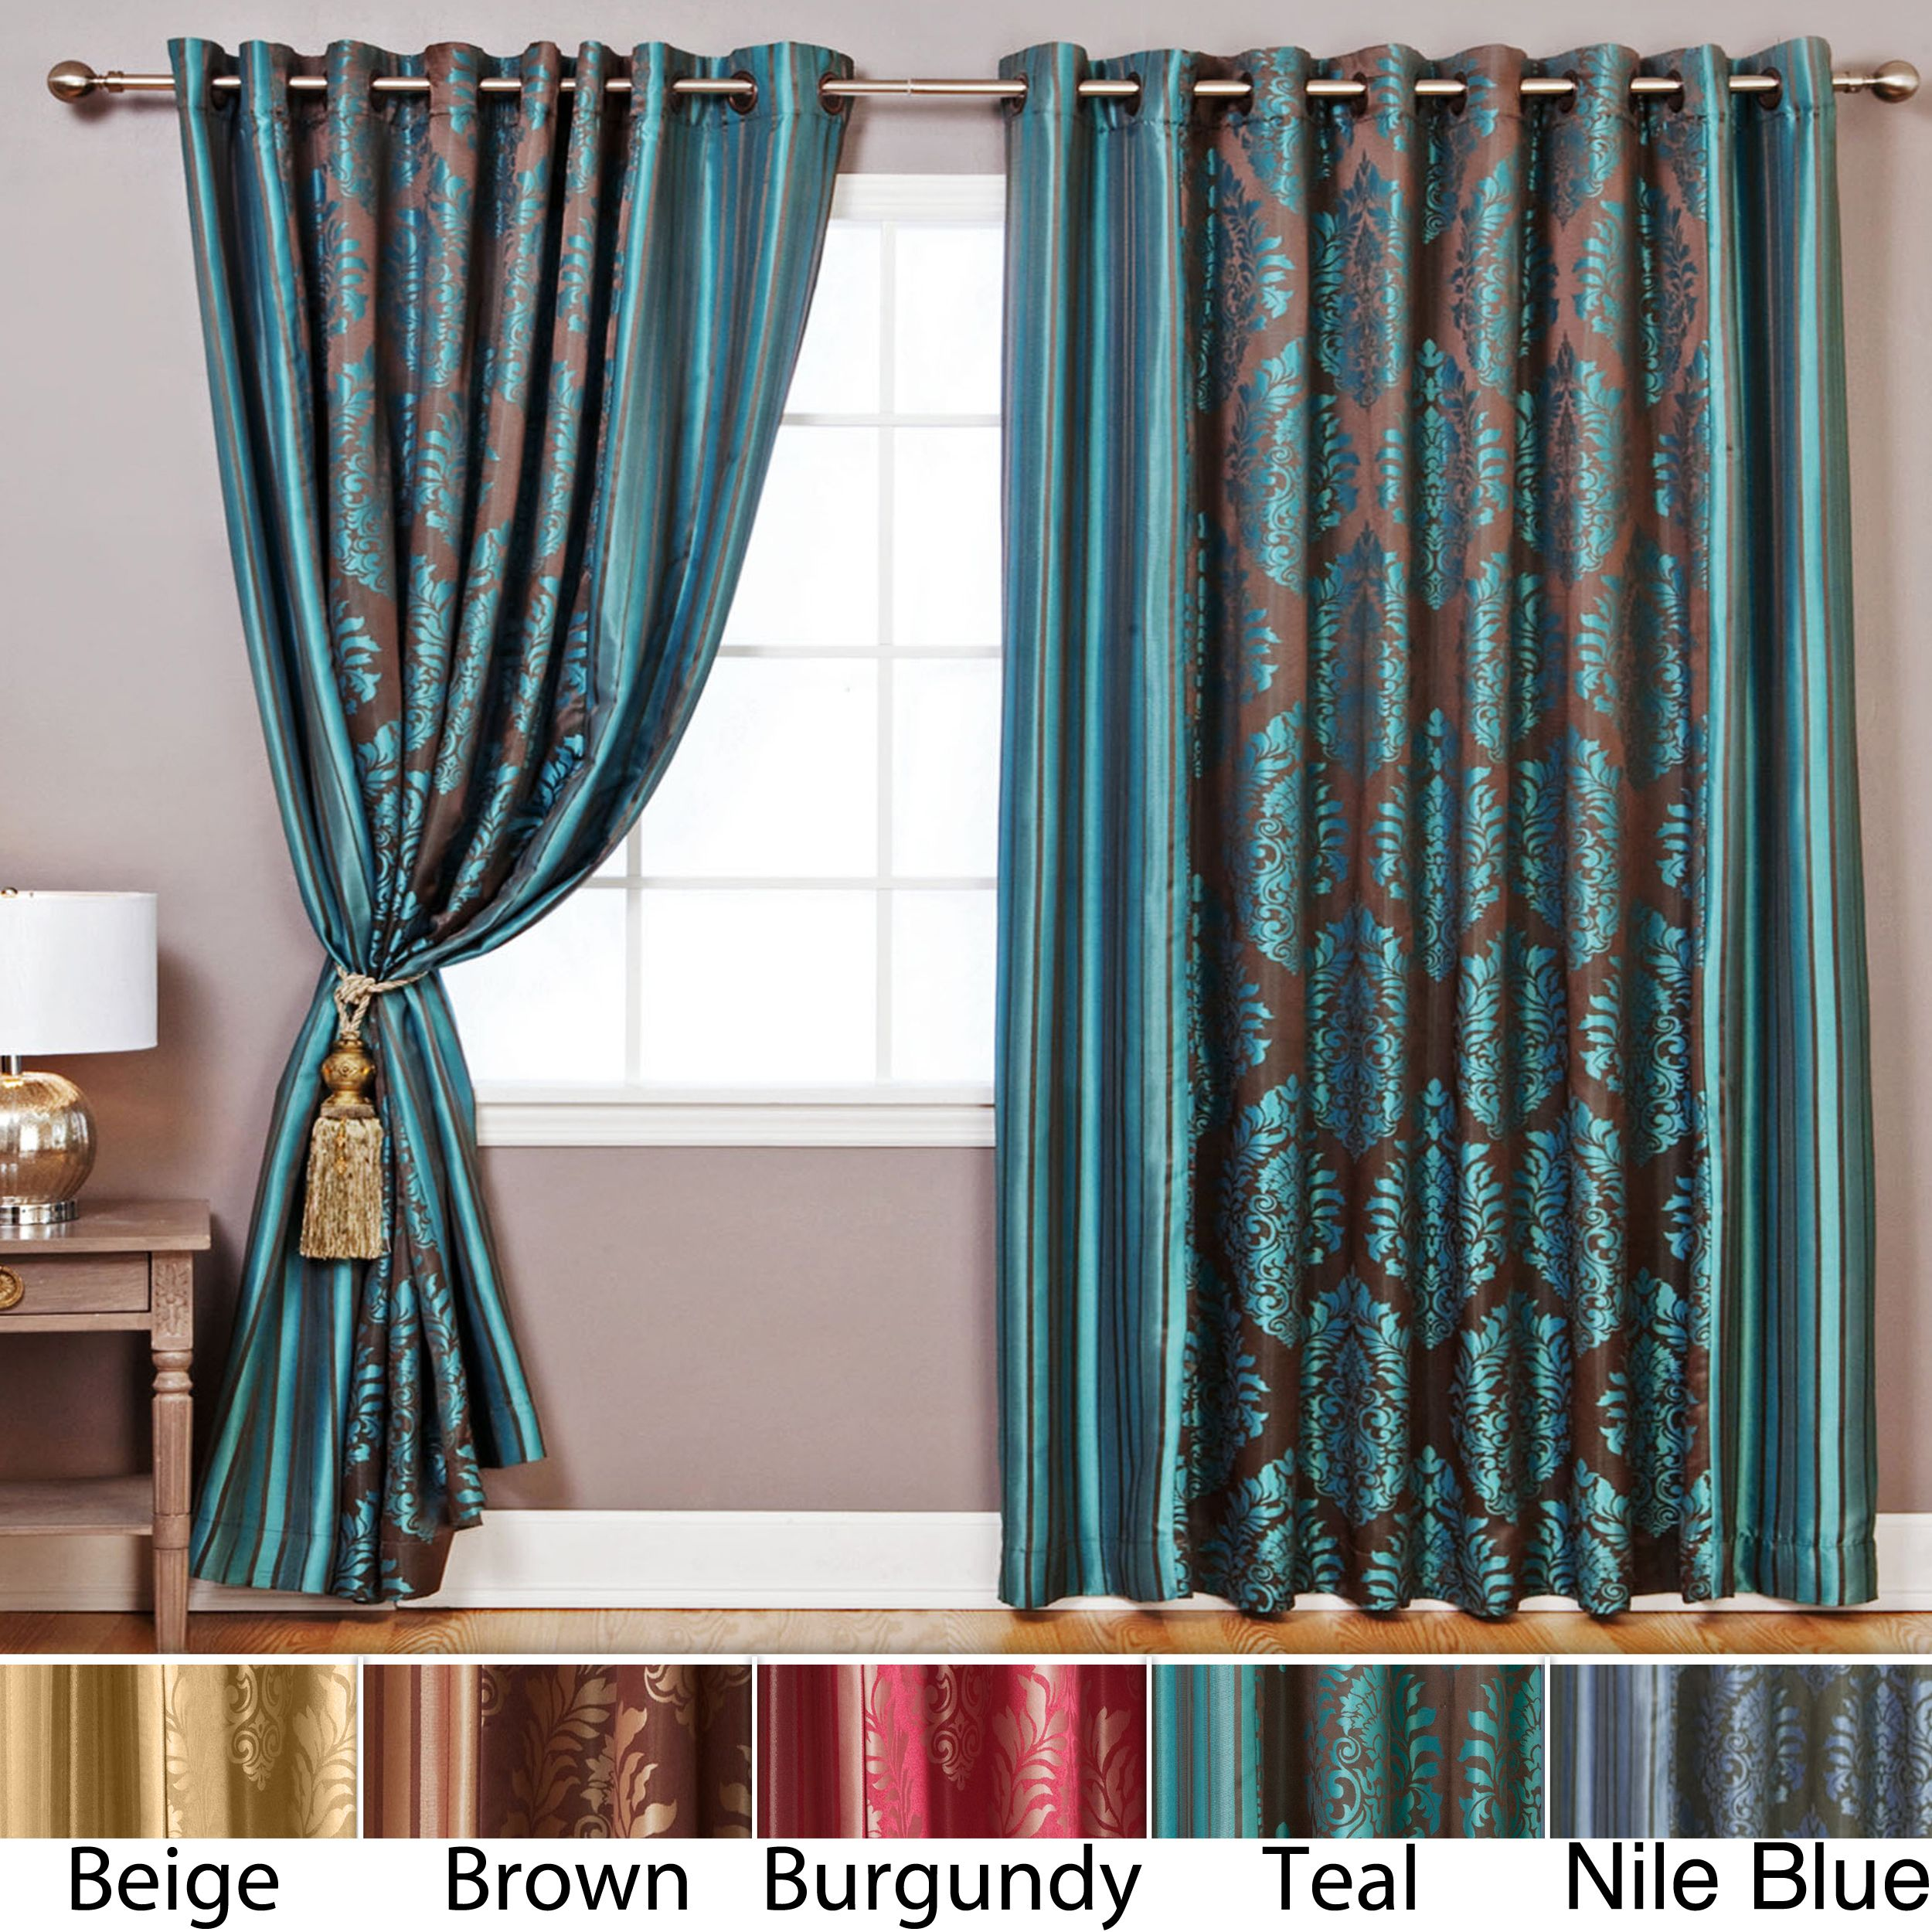 These luxurious 84inch wide curtains turn any space into an oasis